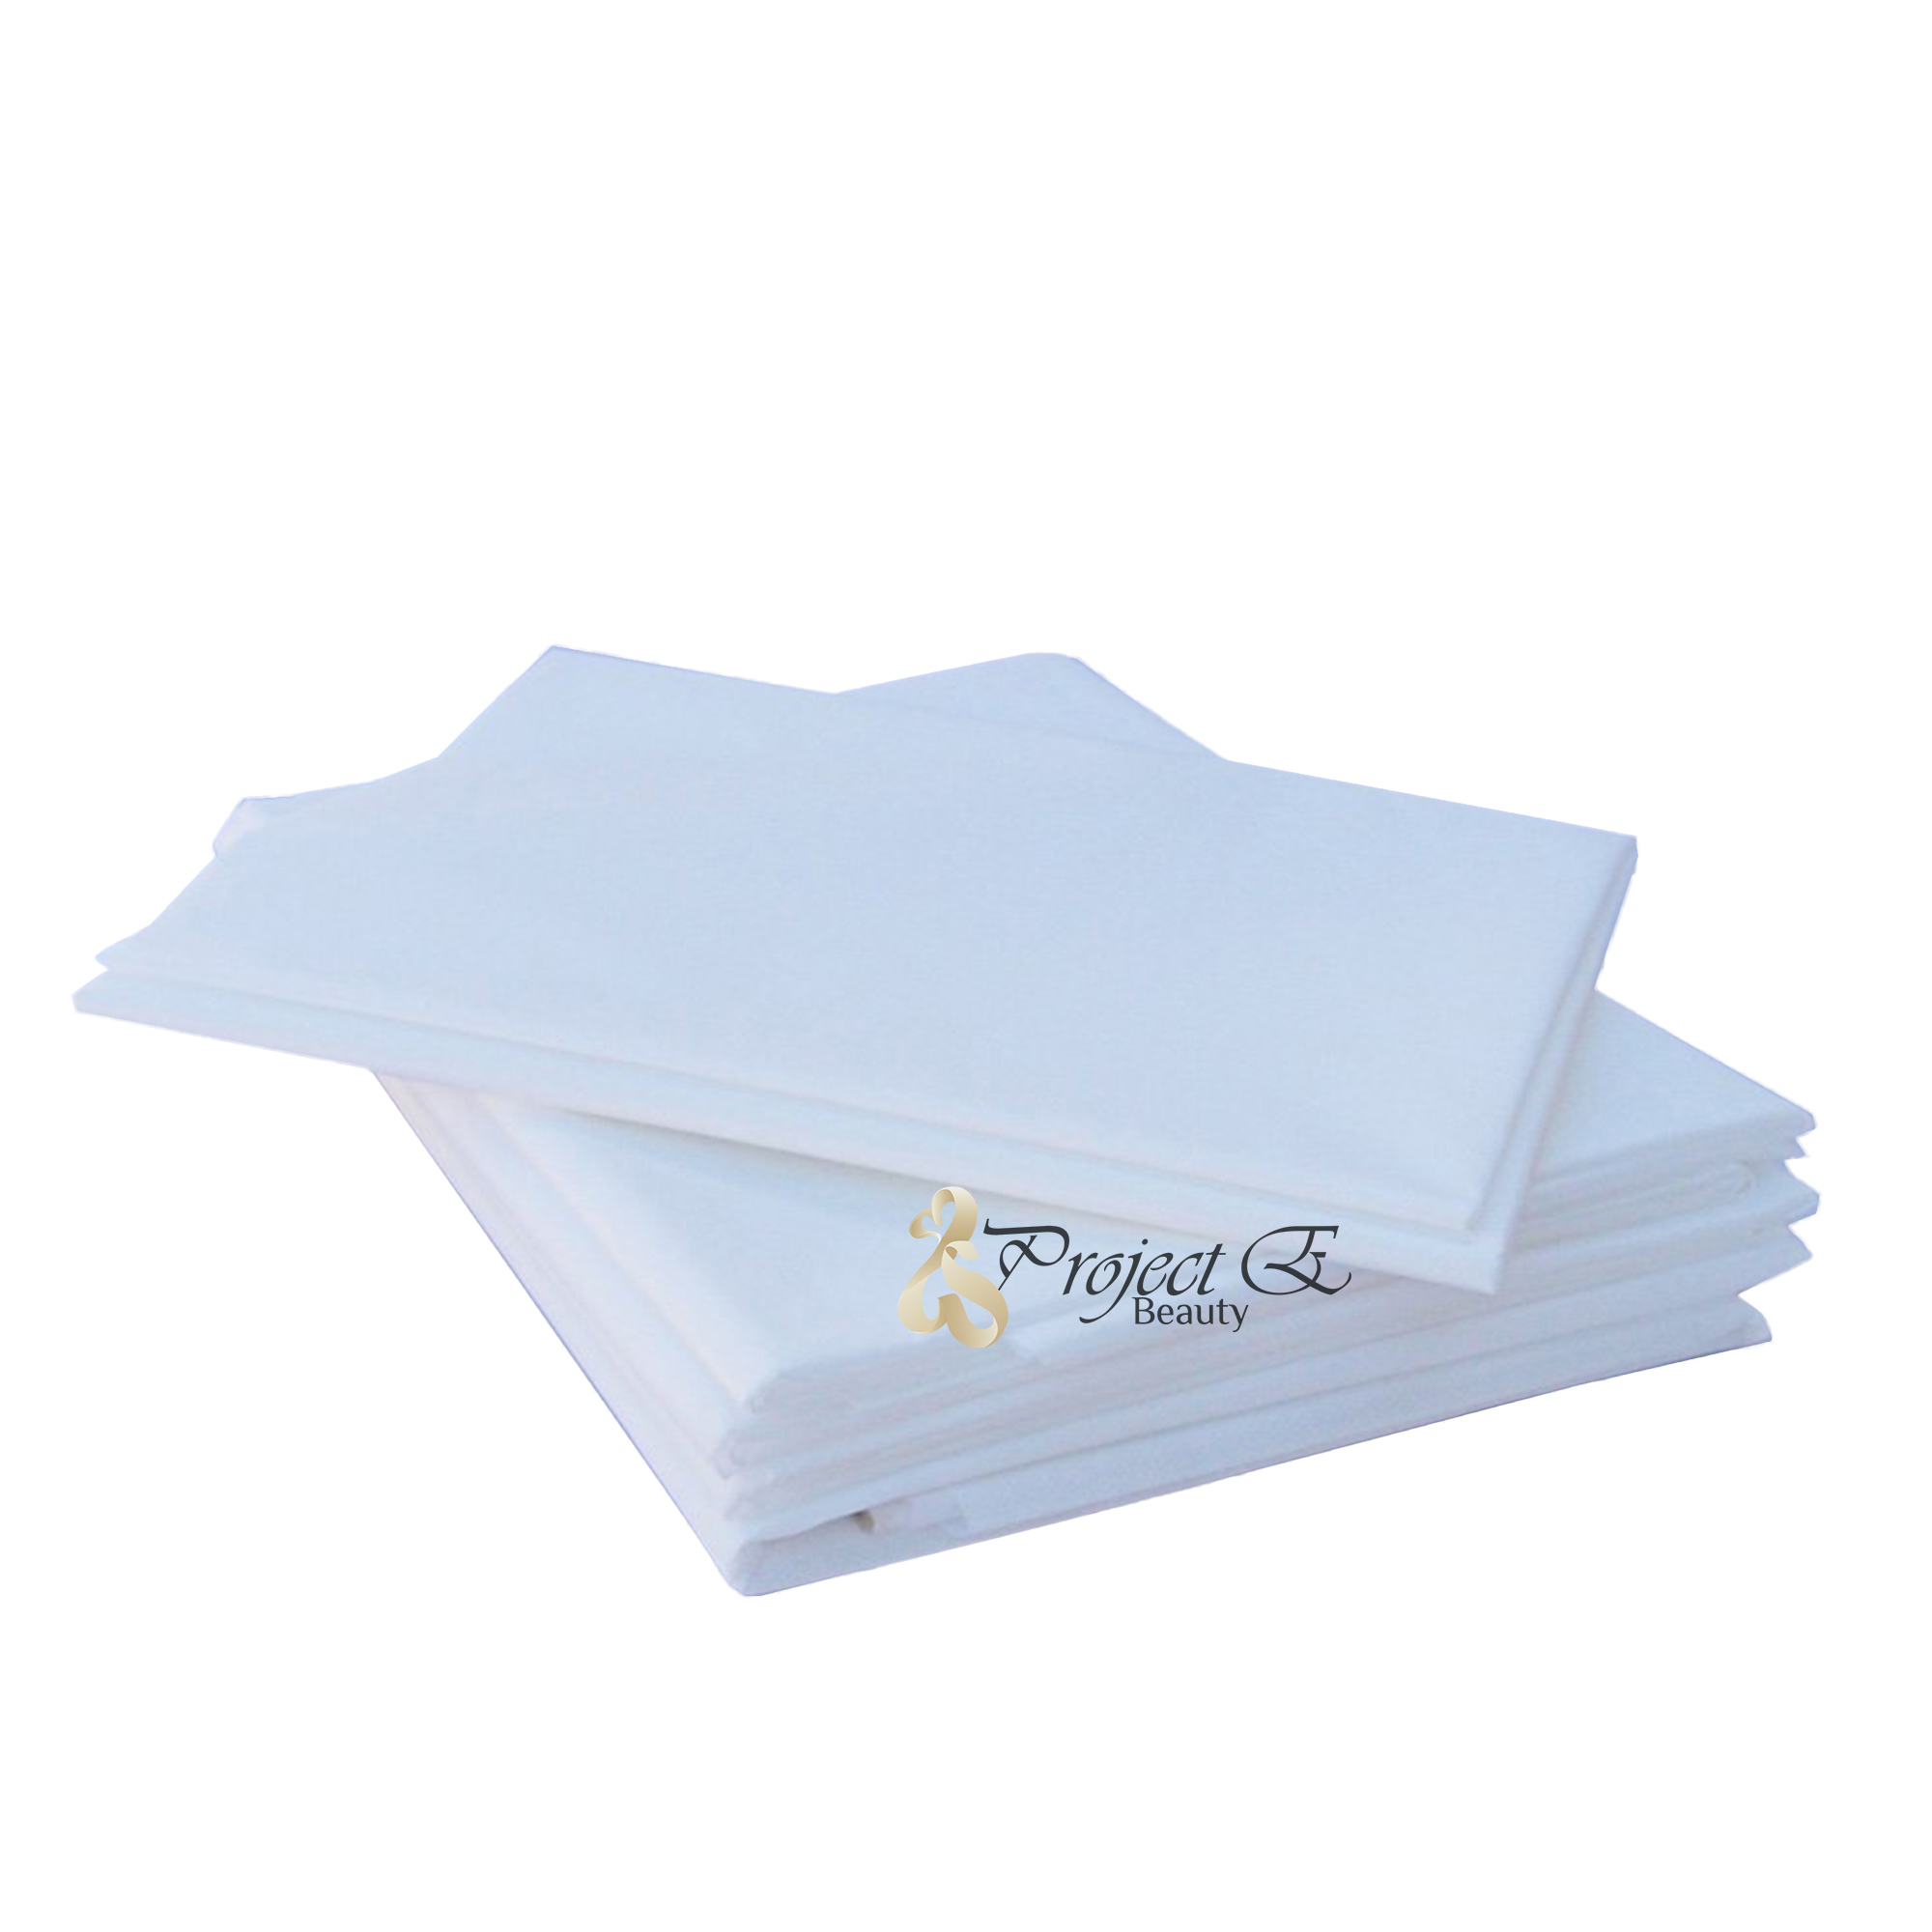 10 PCS Disposable Bed Sheets for Travel Spa Salon Waxing Massage Treatment Massage Table Bed Cover